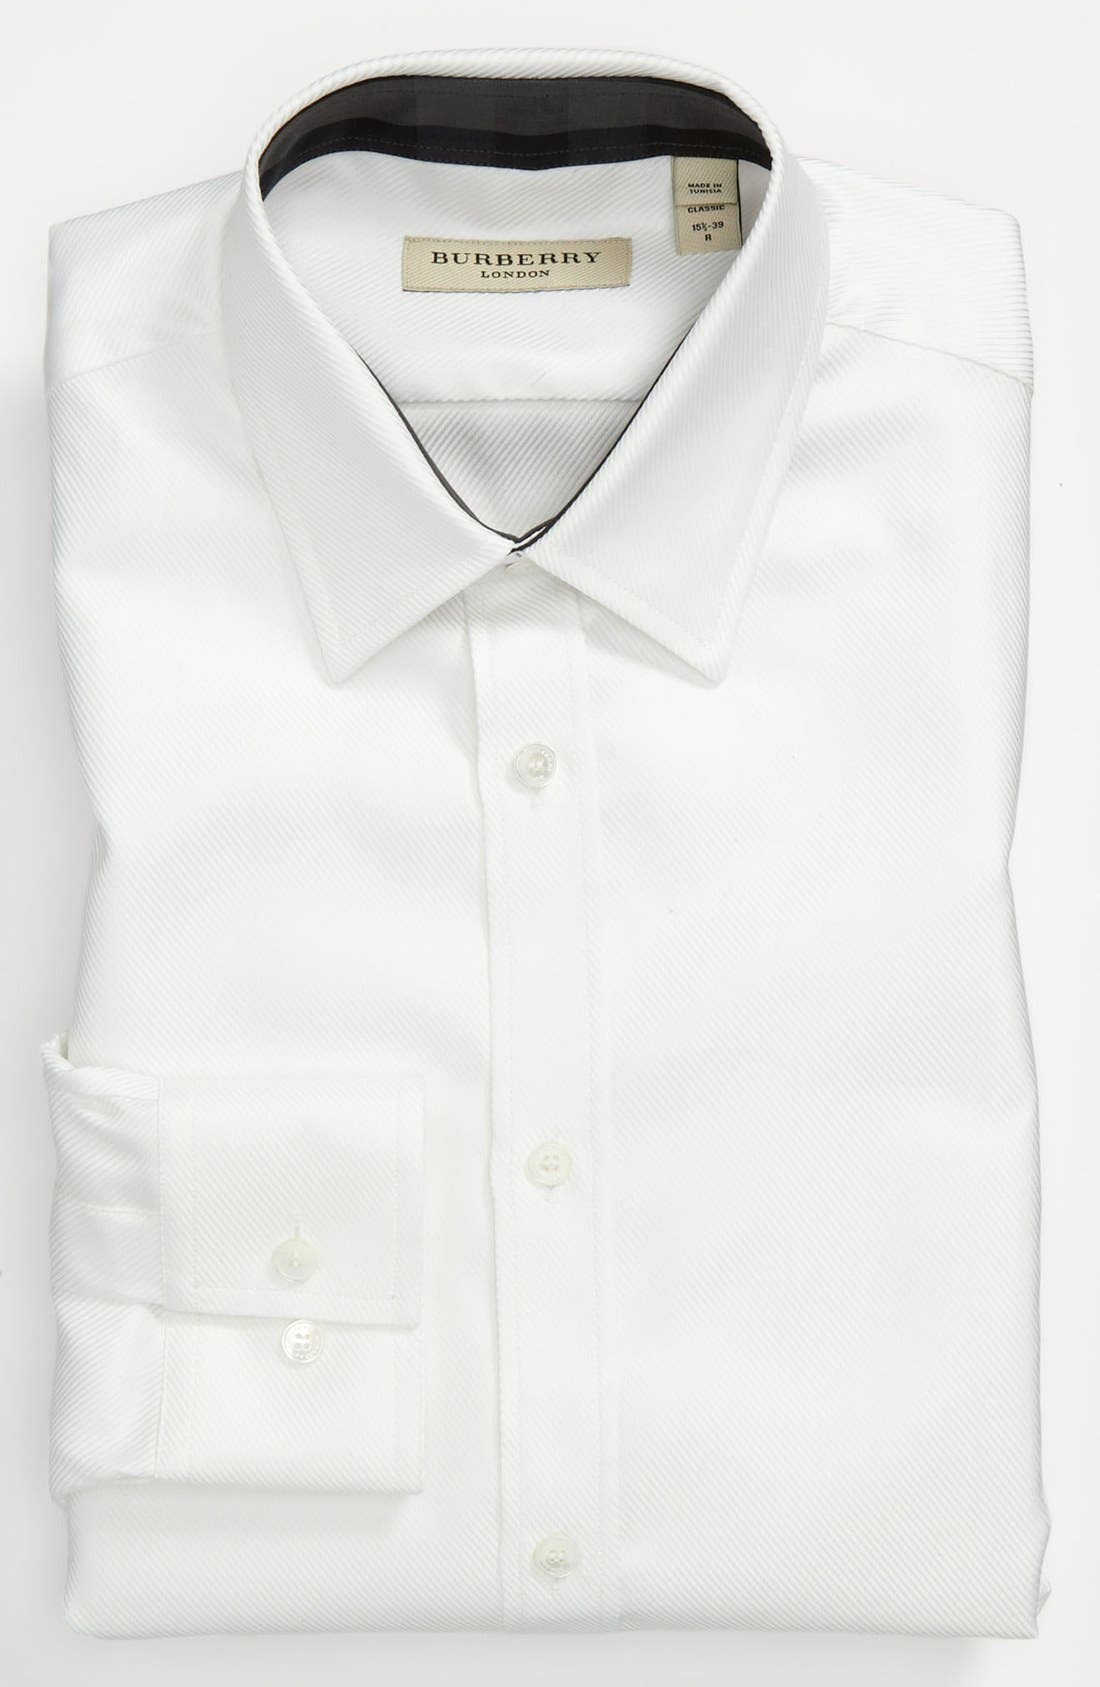 Main Image - Burberry London Regular Fit Dress Shirt